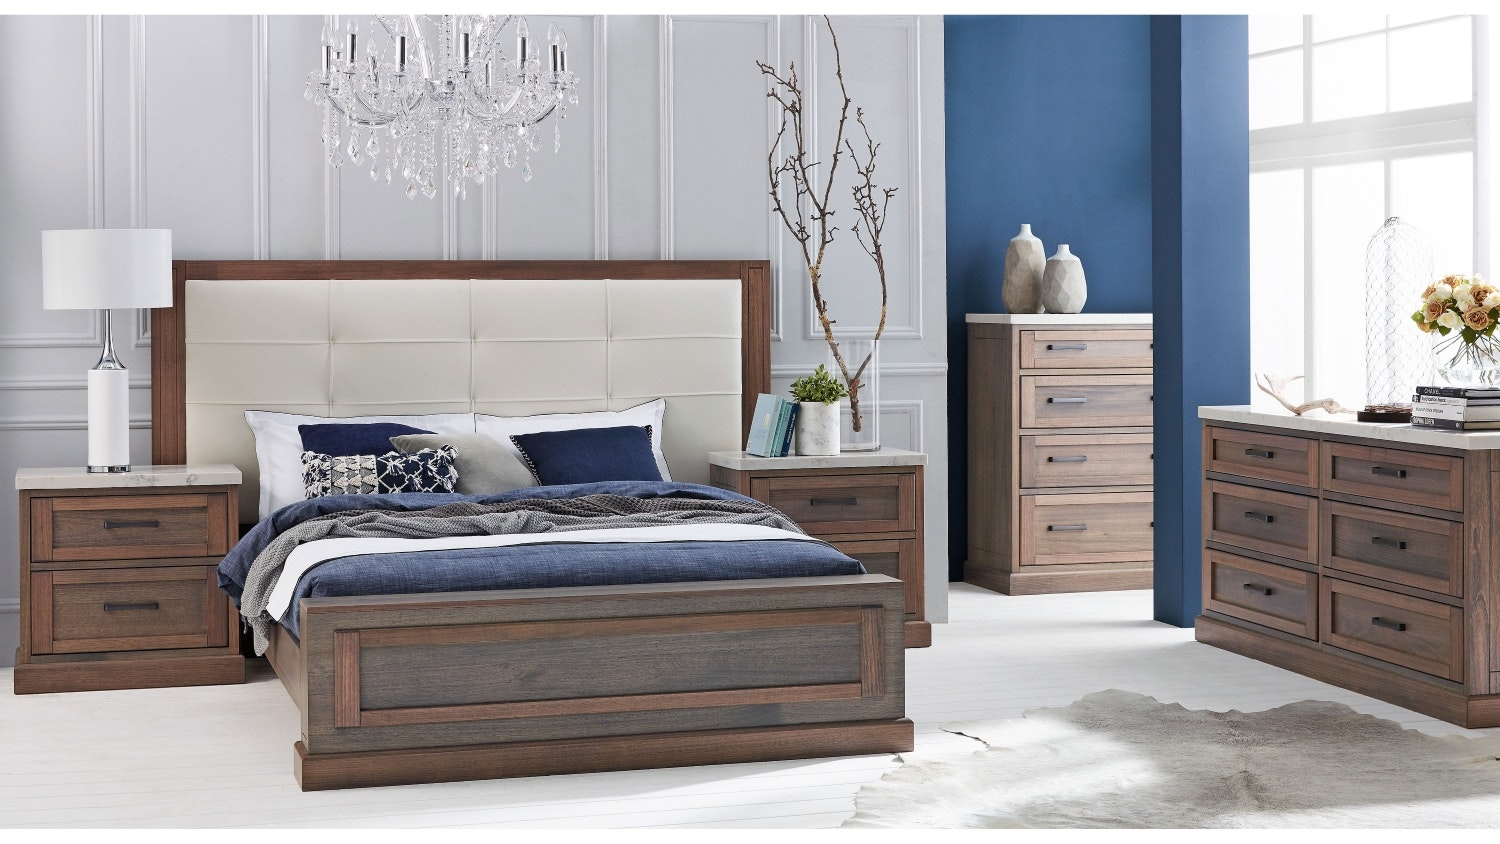 Round Table Bedroom Furniture: Chest Of Drawers, Tallboy, Drawers, Drawer, Dresser